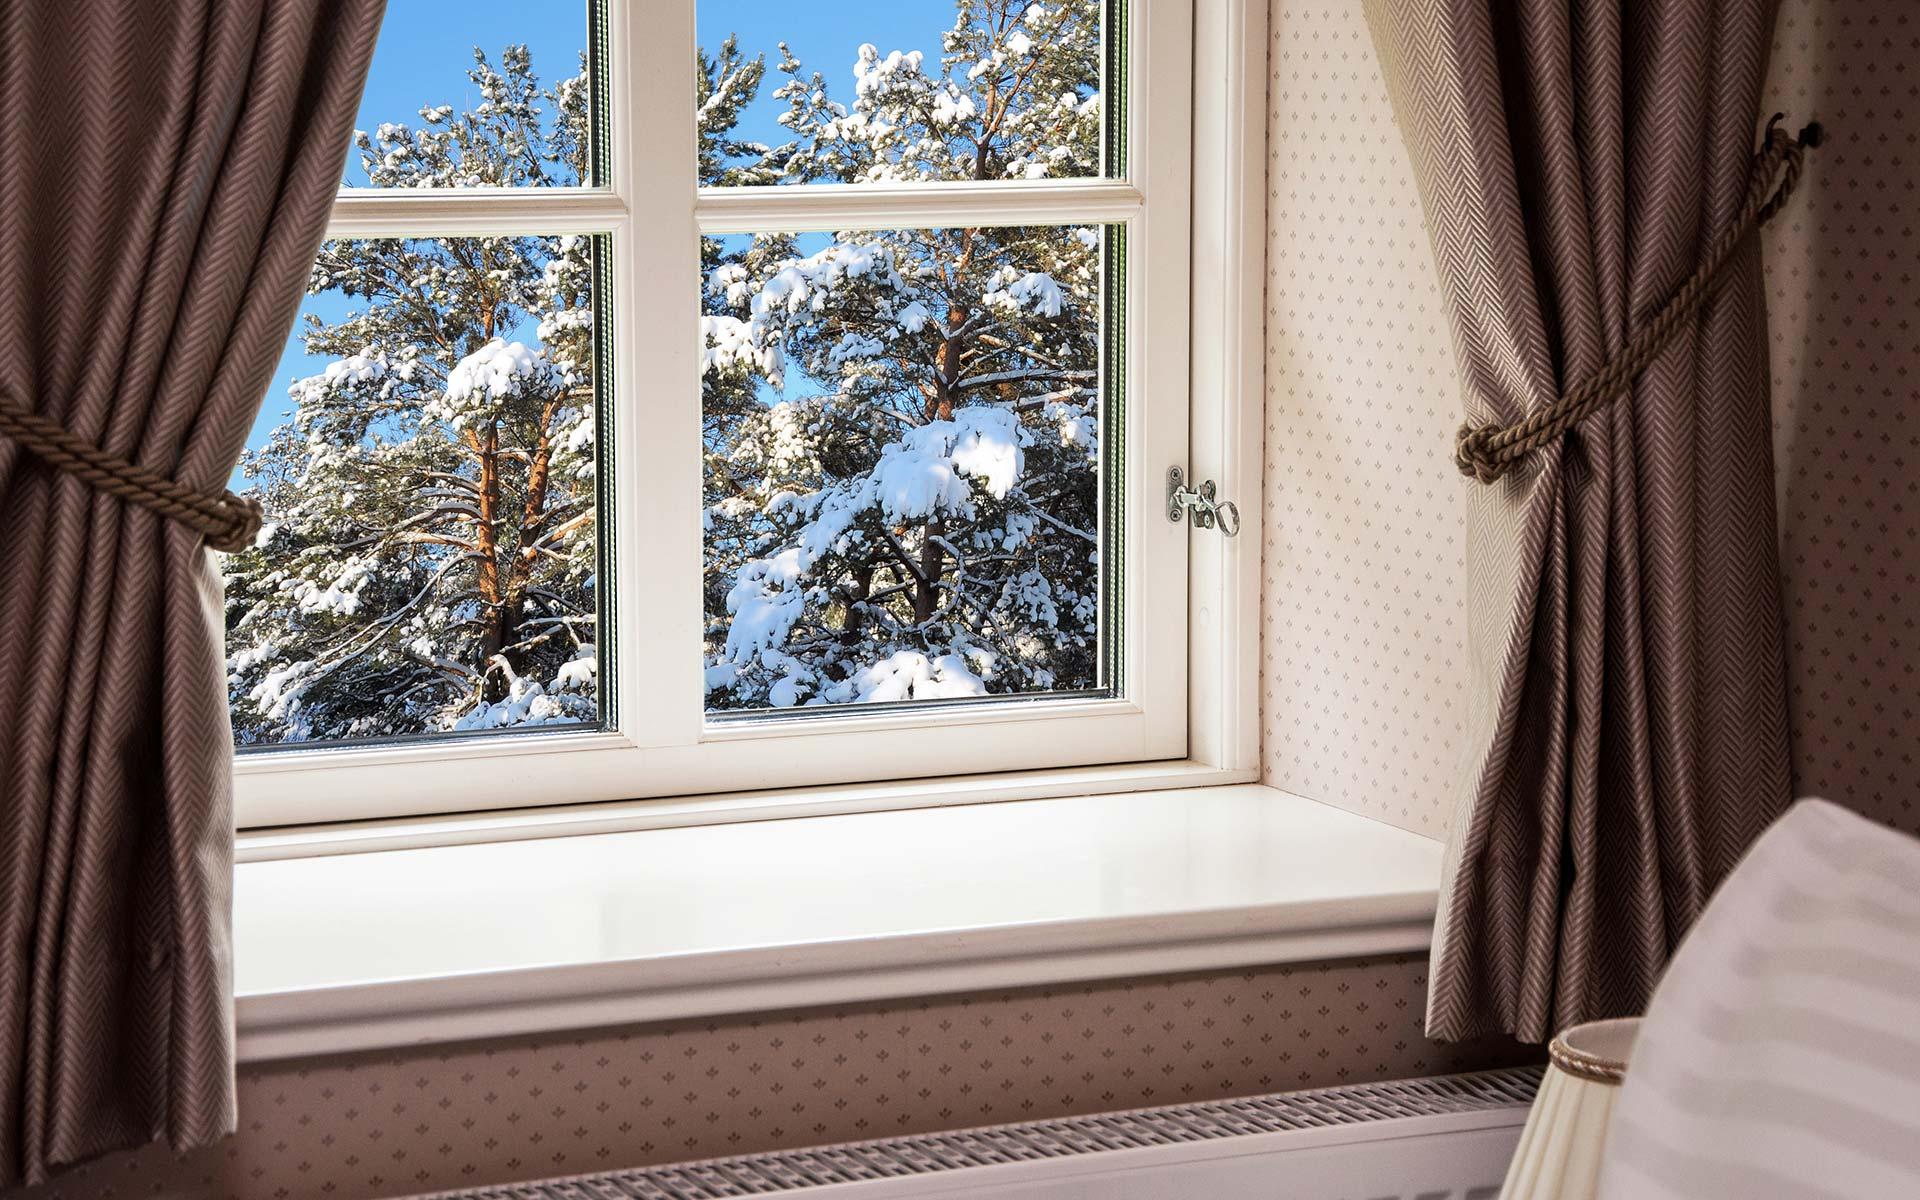 winter heating bills are piling up. let all service glass help!